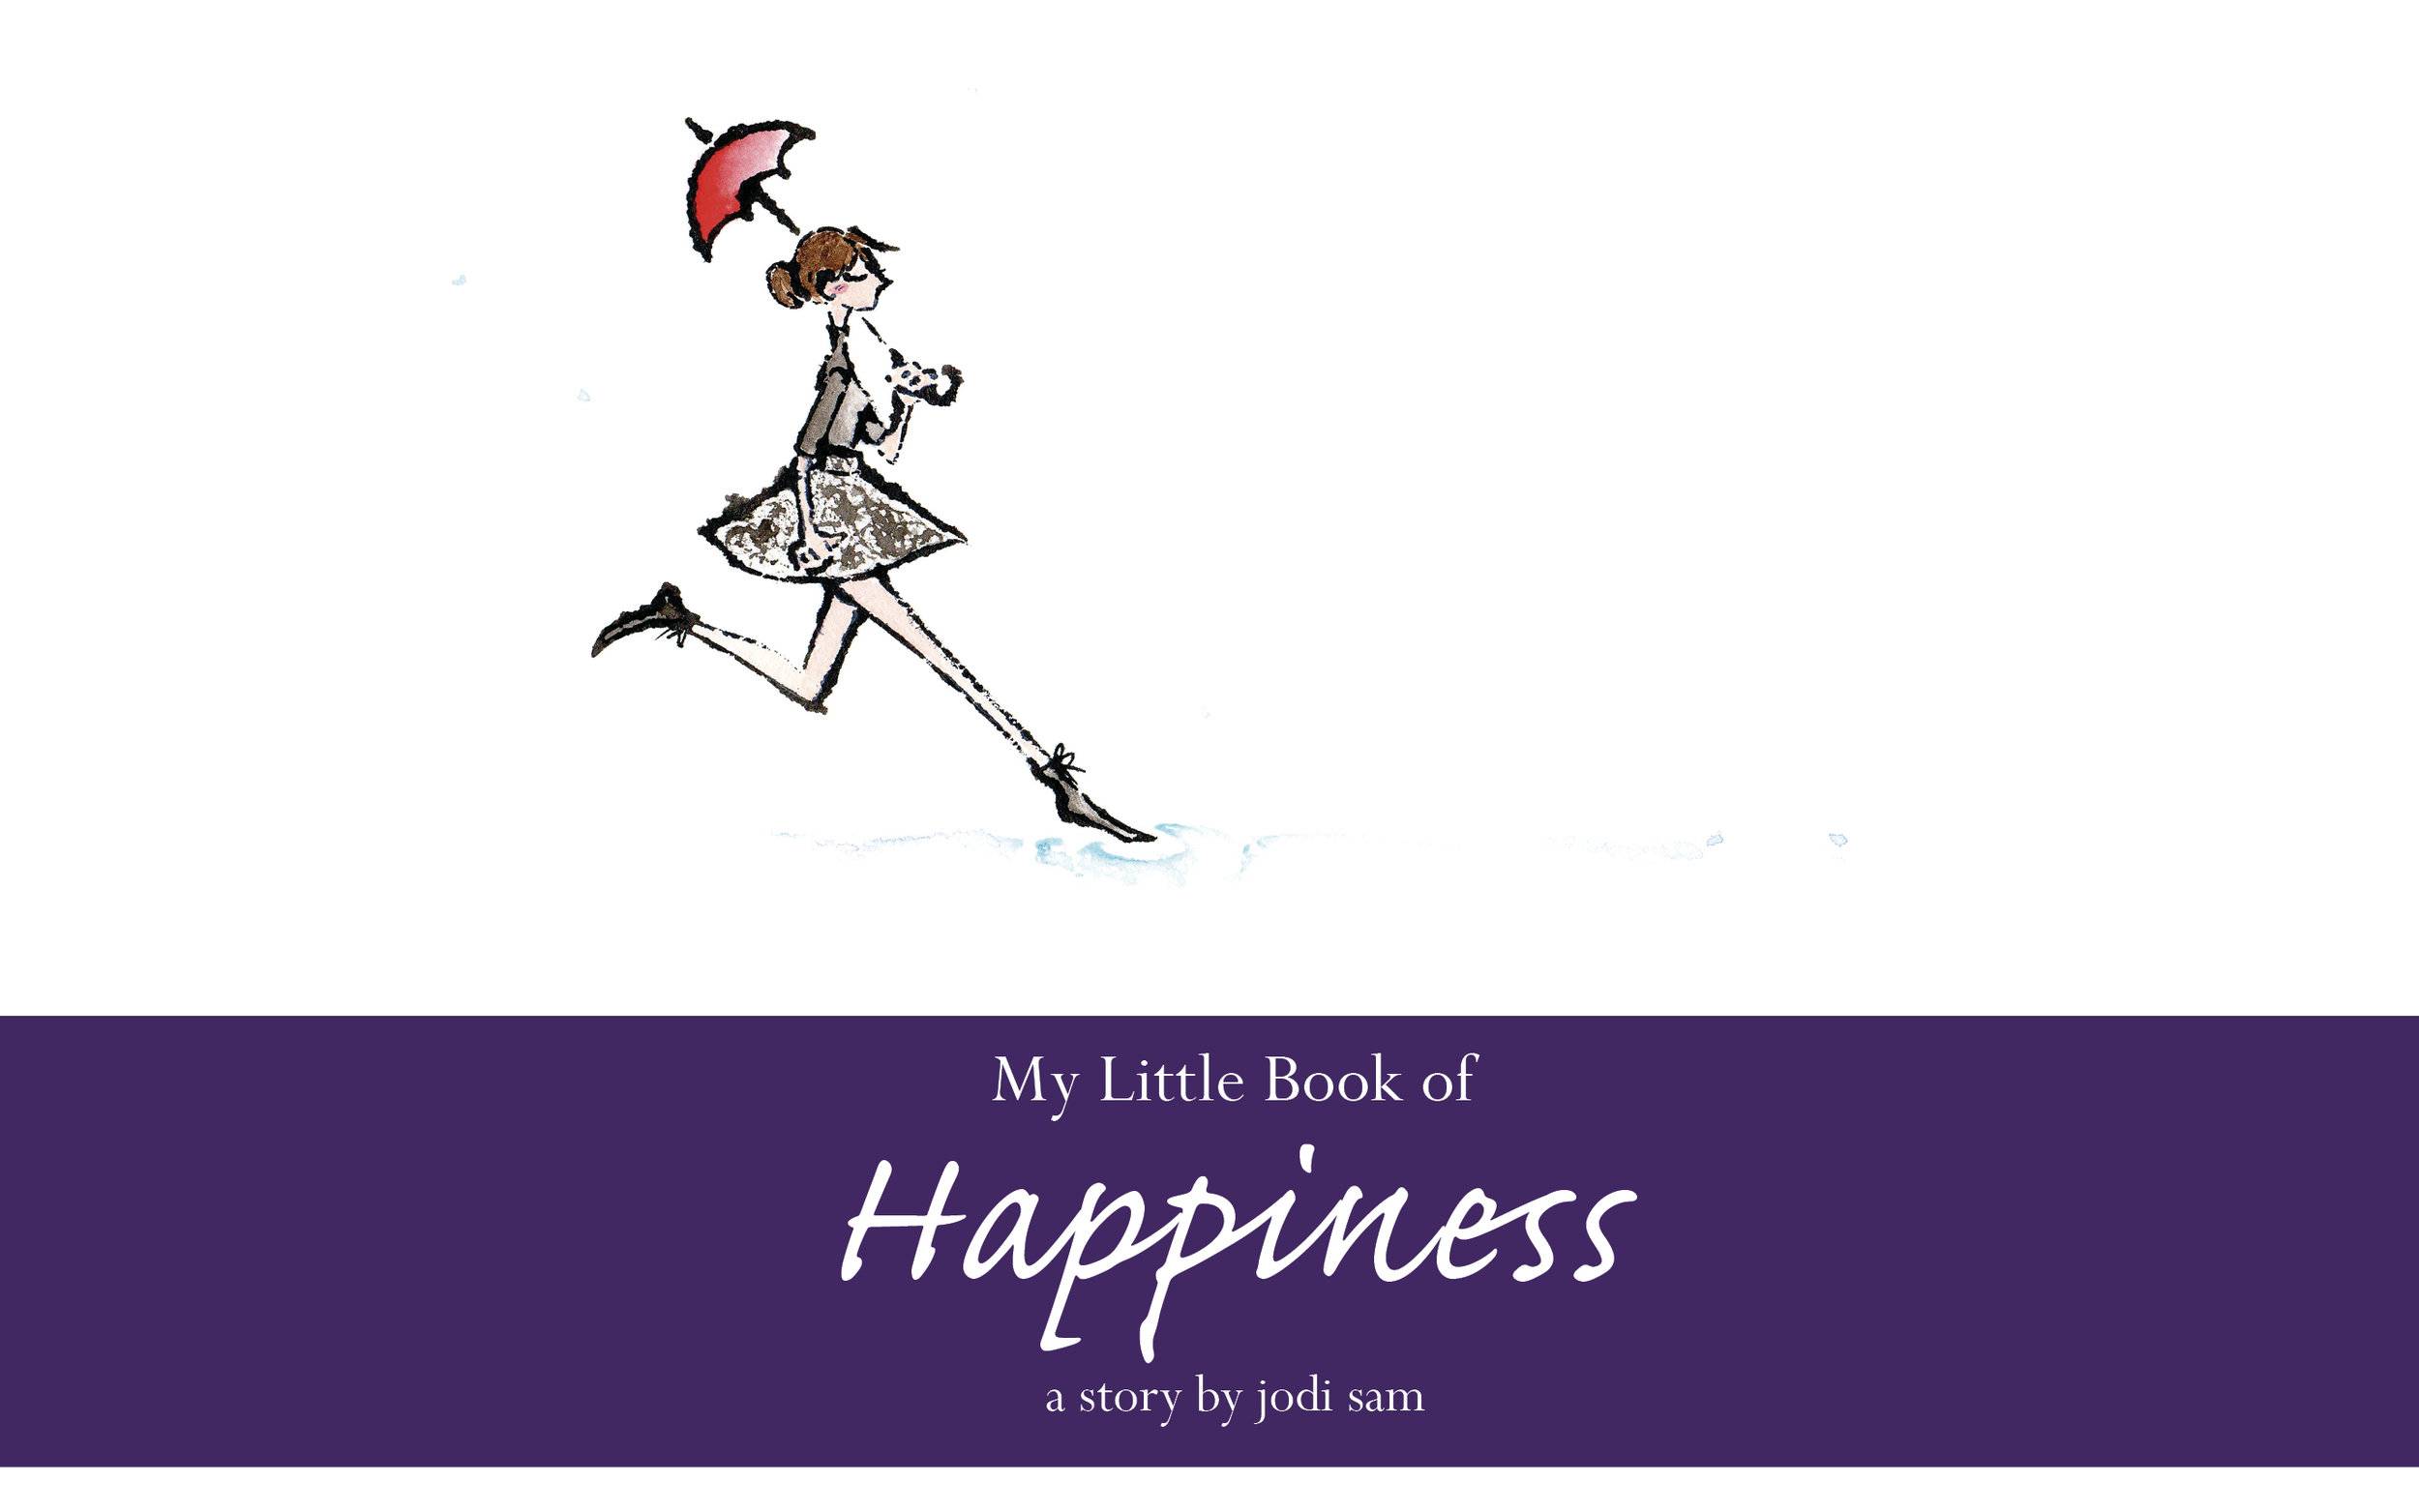 my little book of happiness_jodisam.jpg